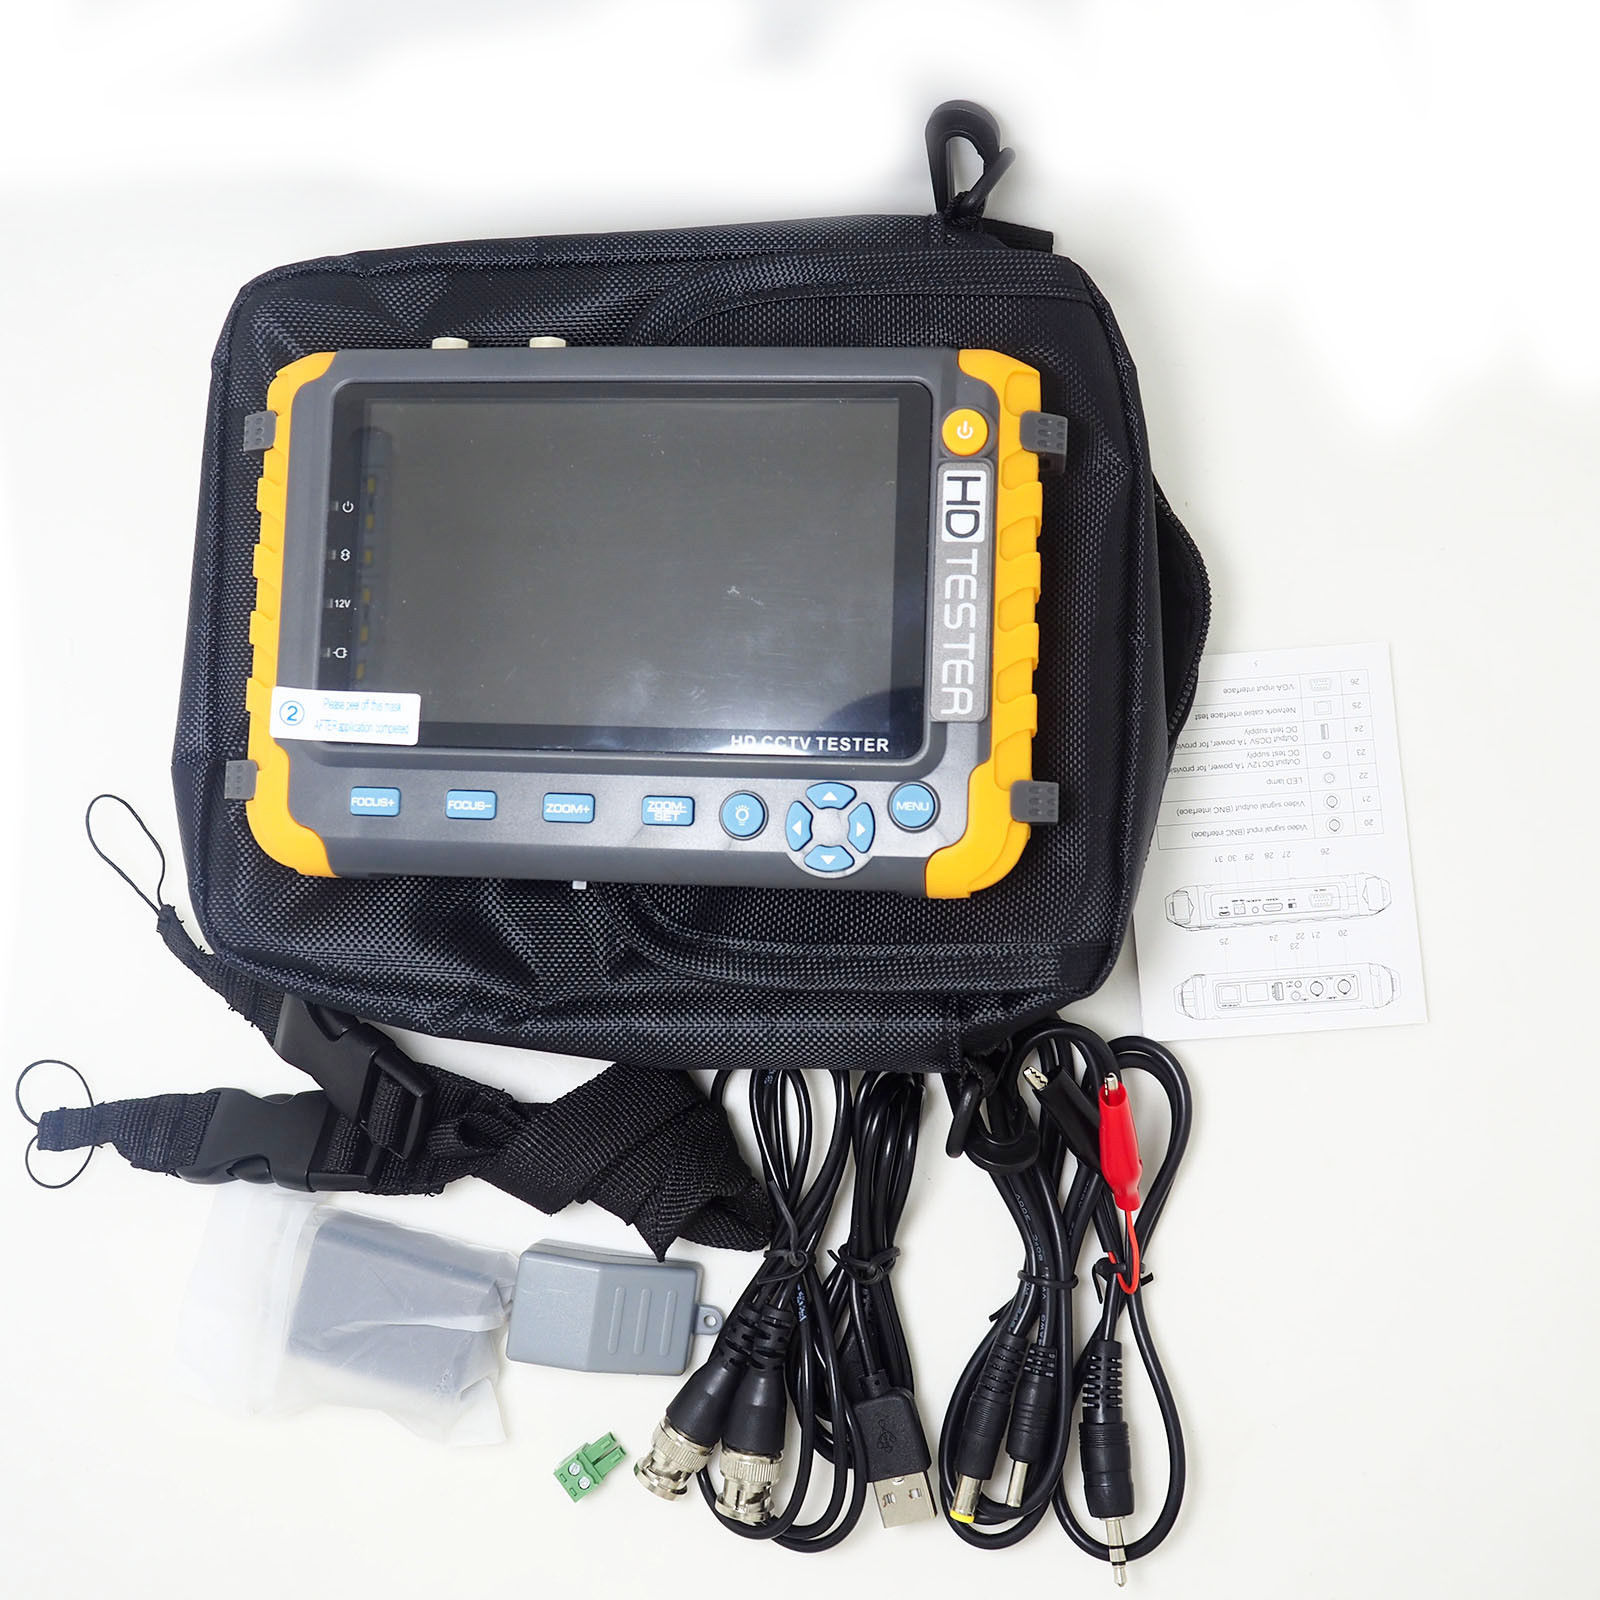 5inch HD Test Monitor built-in Battery for CCTV Camera (IV8W)